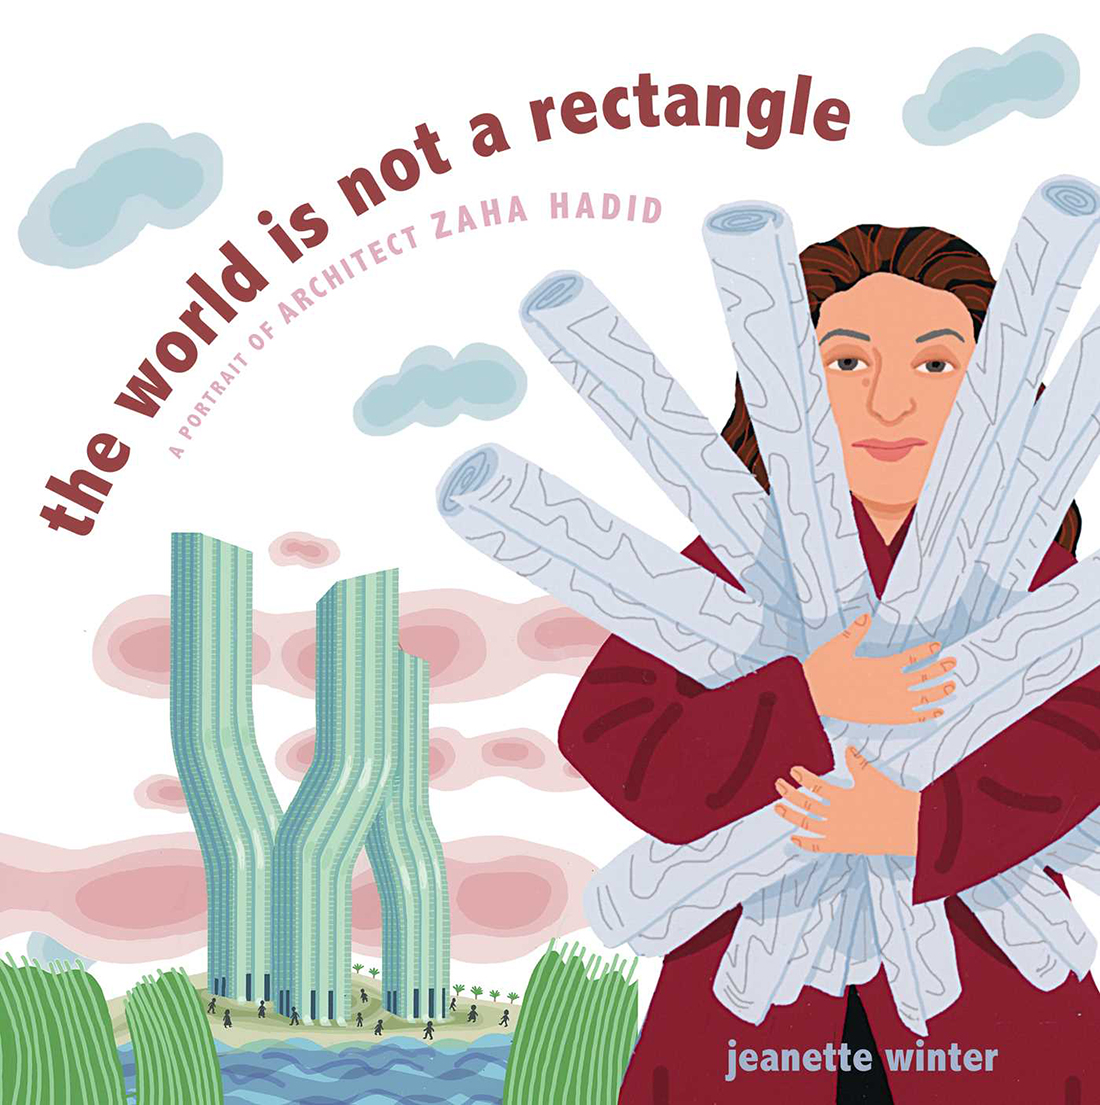 Jeanette Winter, The world is not a rectangle Zaha Hadid. Credit: S&S/Beach Lane Books